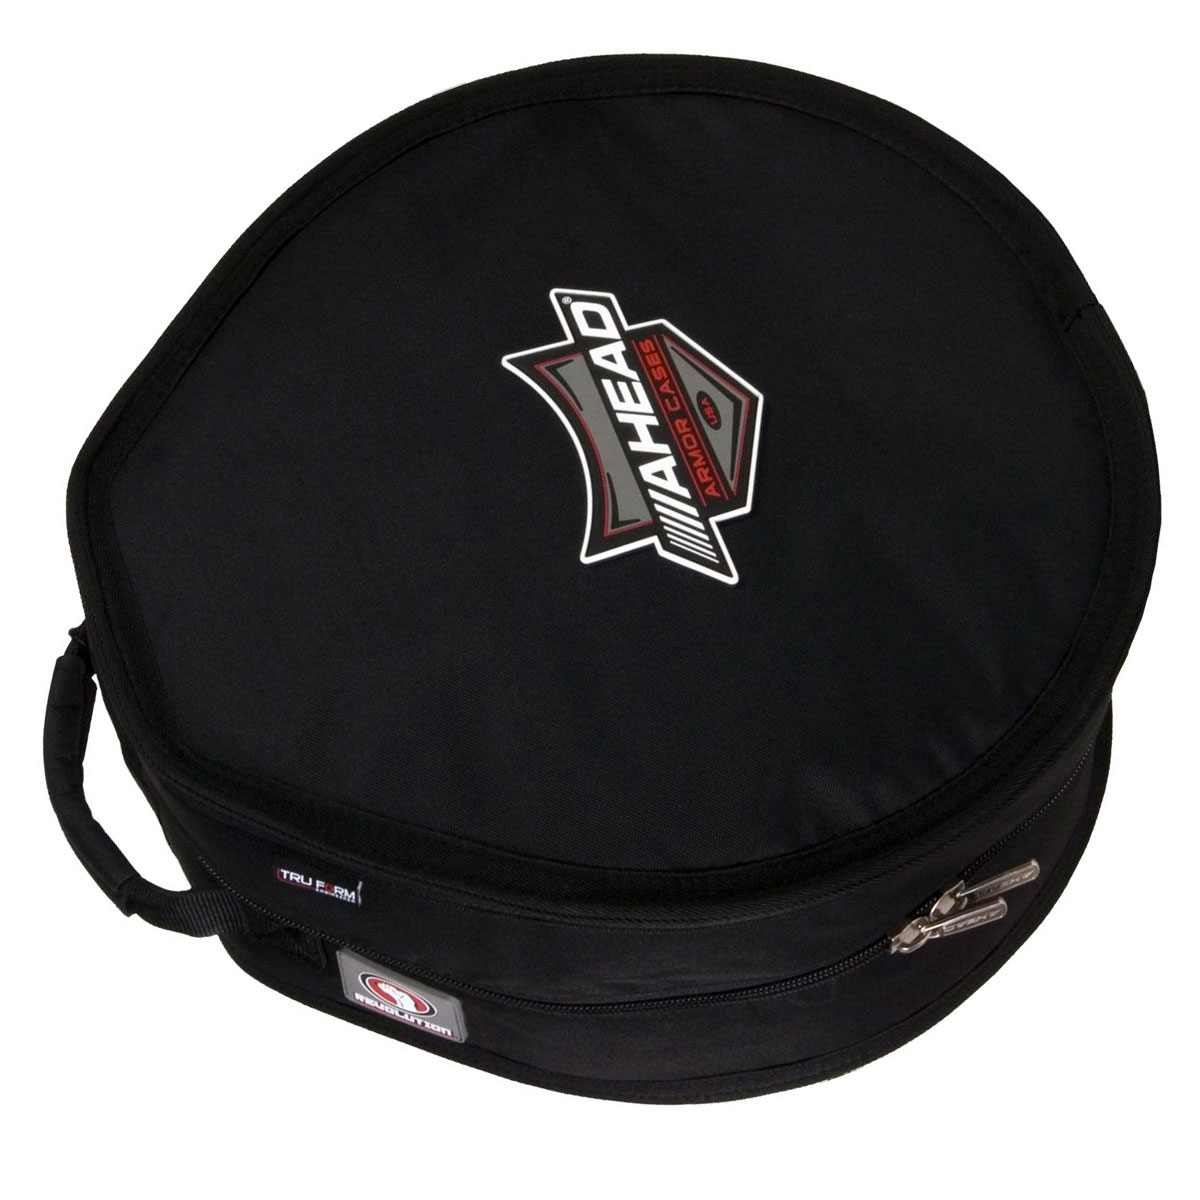 "Ahead Armor 3"" (Deep) x 13"" (Diameter) Piccolo Snare Case"